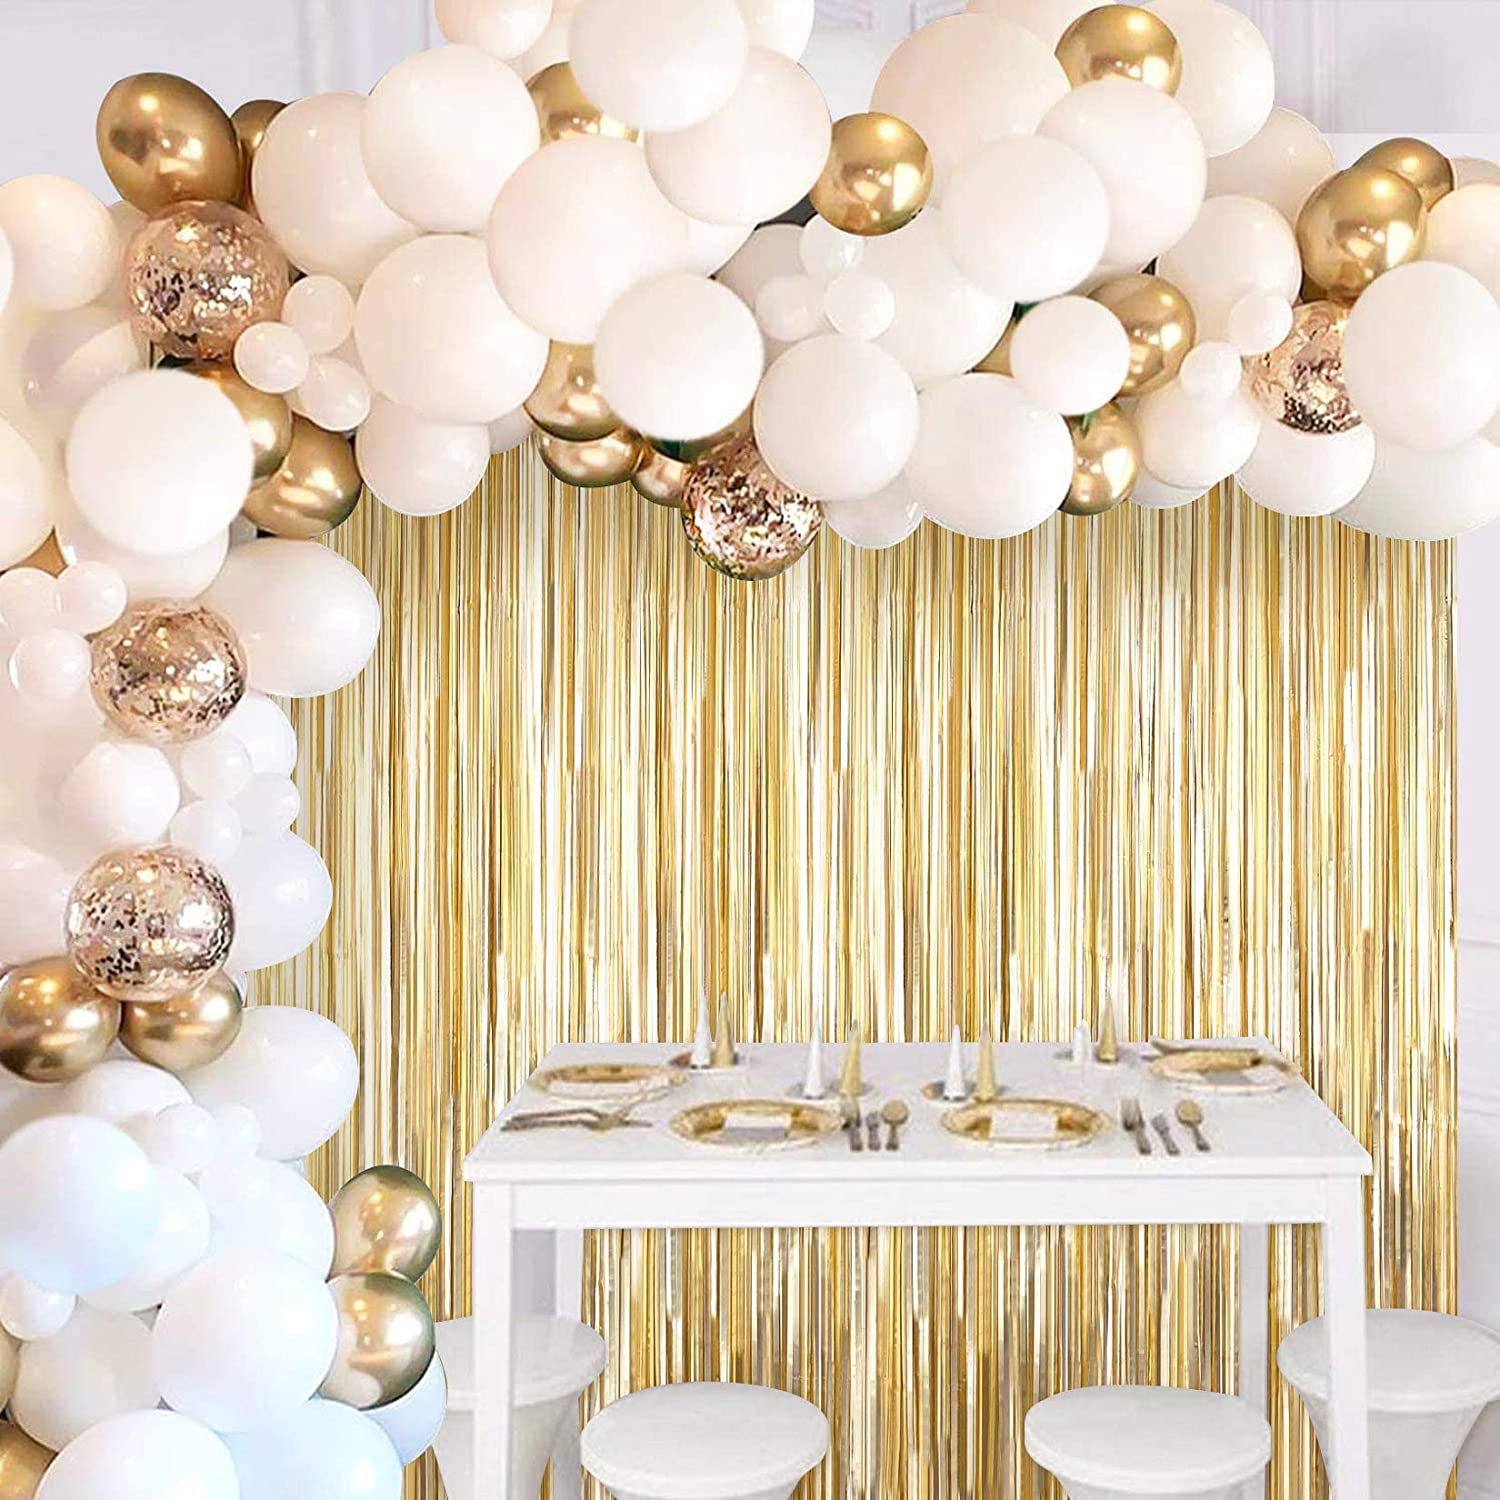 JOYYPOP White Gold Balloon Garland with Curtain Outlet SALE Kit 5 popular Tinsel